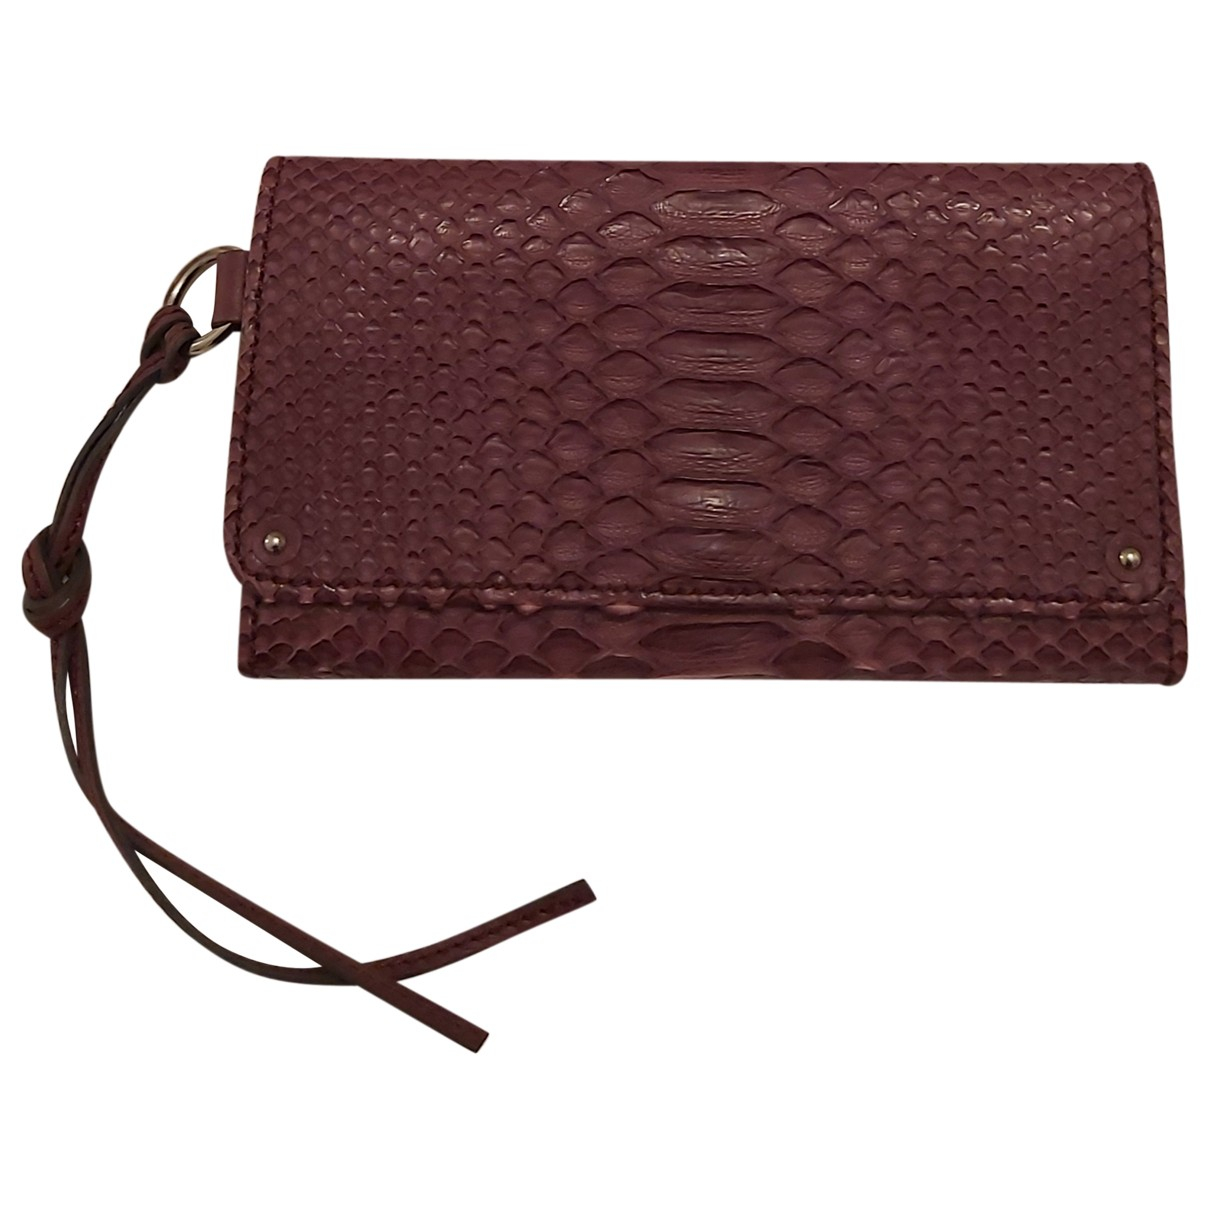 Chloé \N Purple Python Clutch bag for Women \N